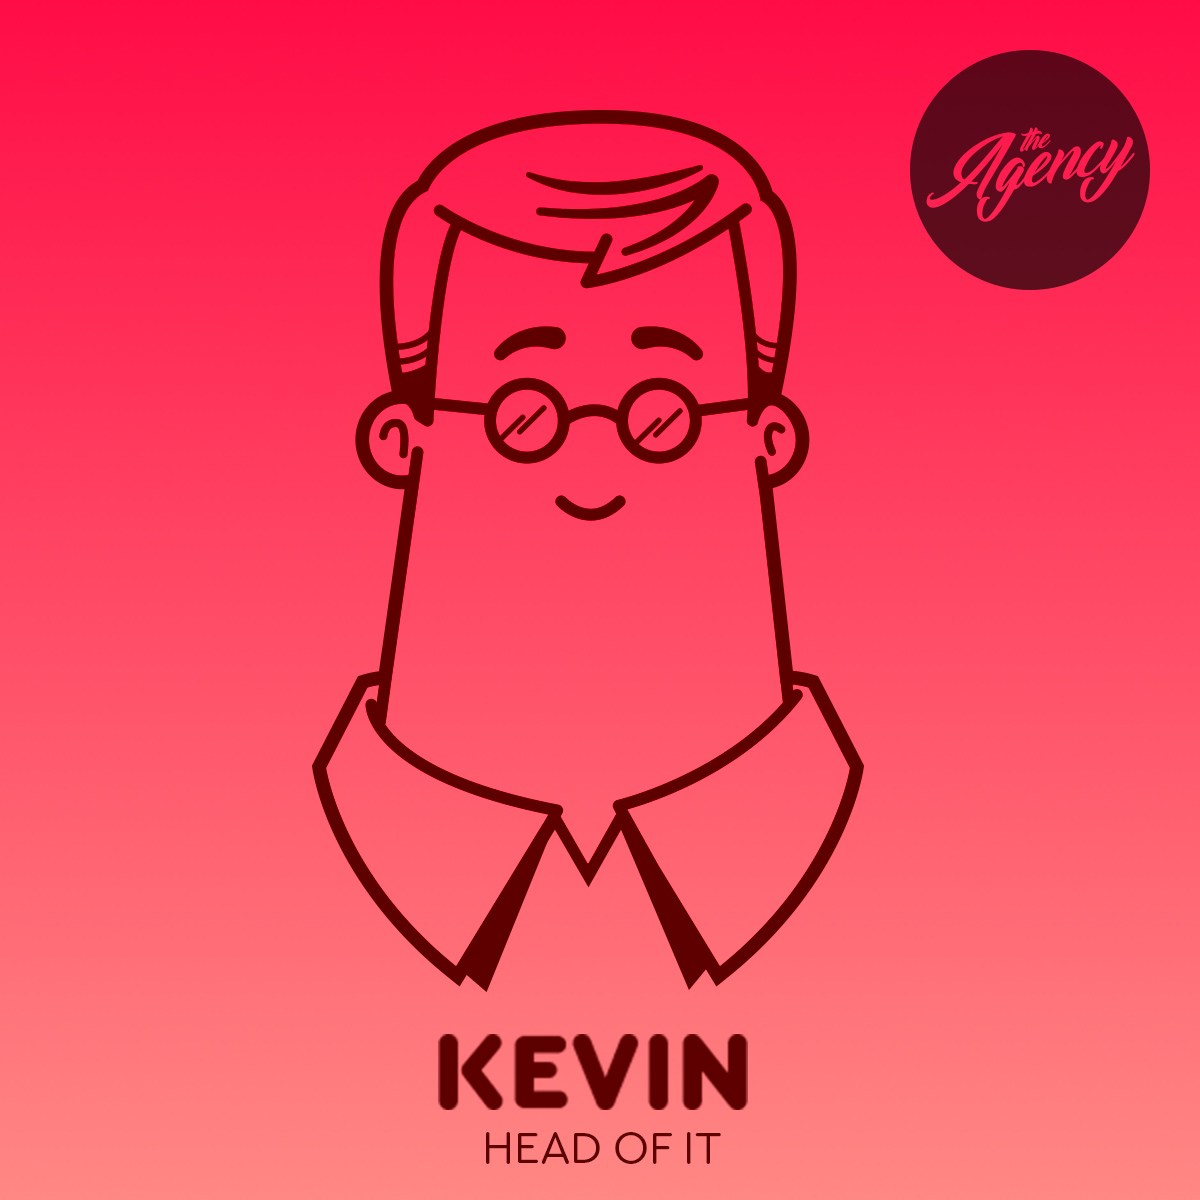 Agency-Instagram-profiles_Kev